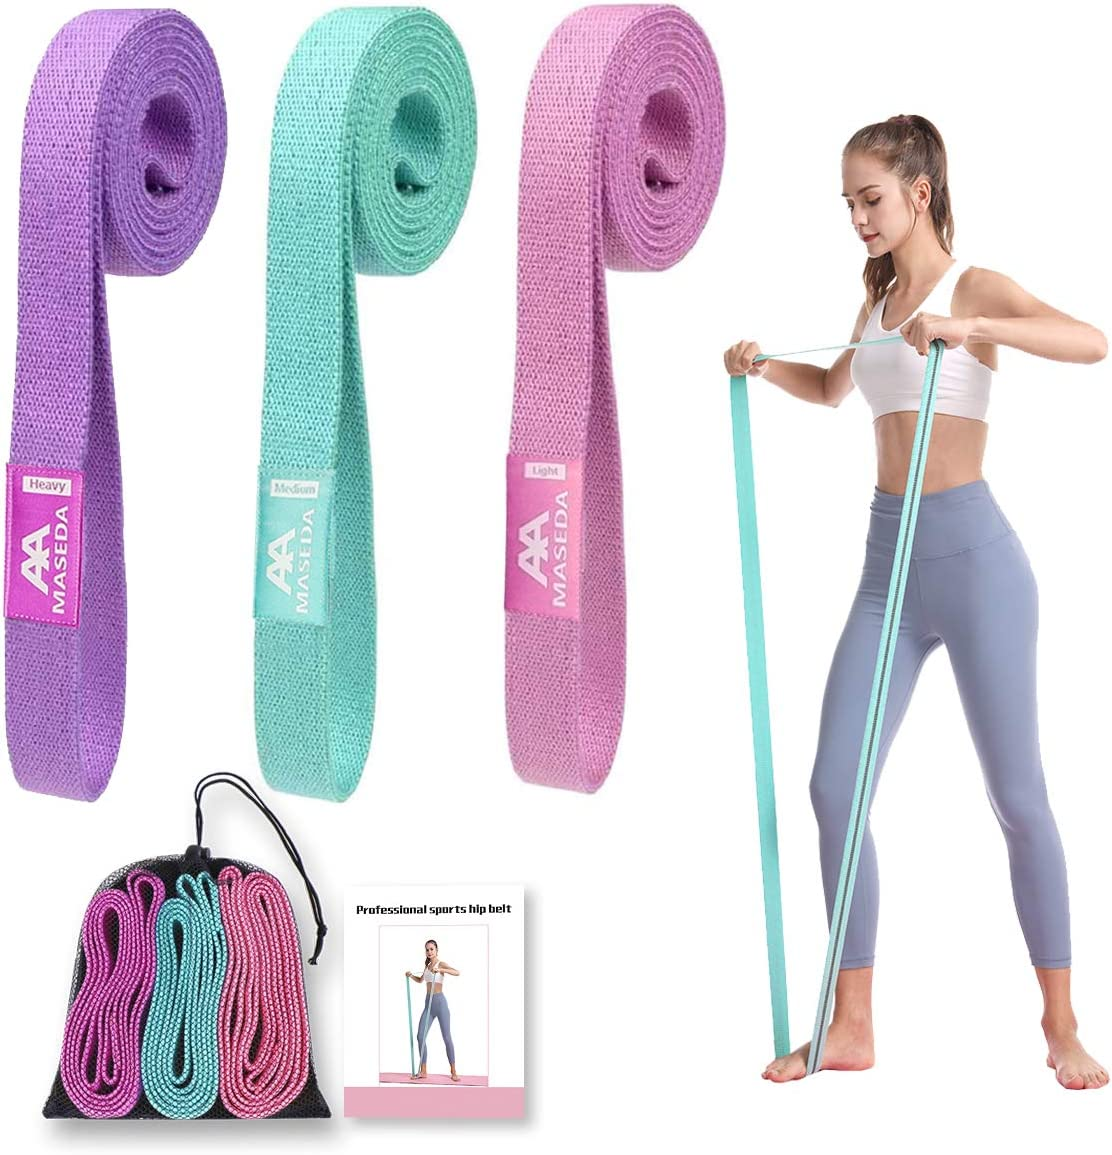 Long Ranking TOP20 Resistance Bands Set for Free shipping New Professional Exercise Ideal